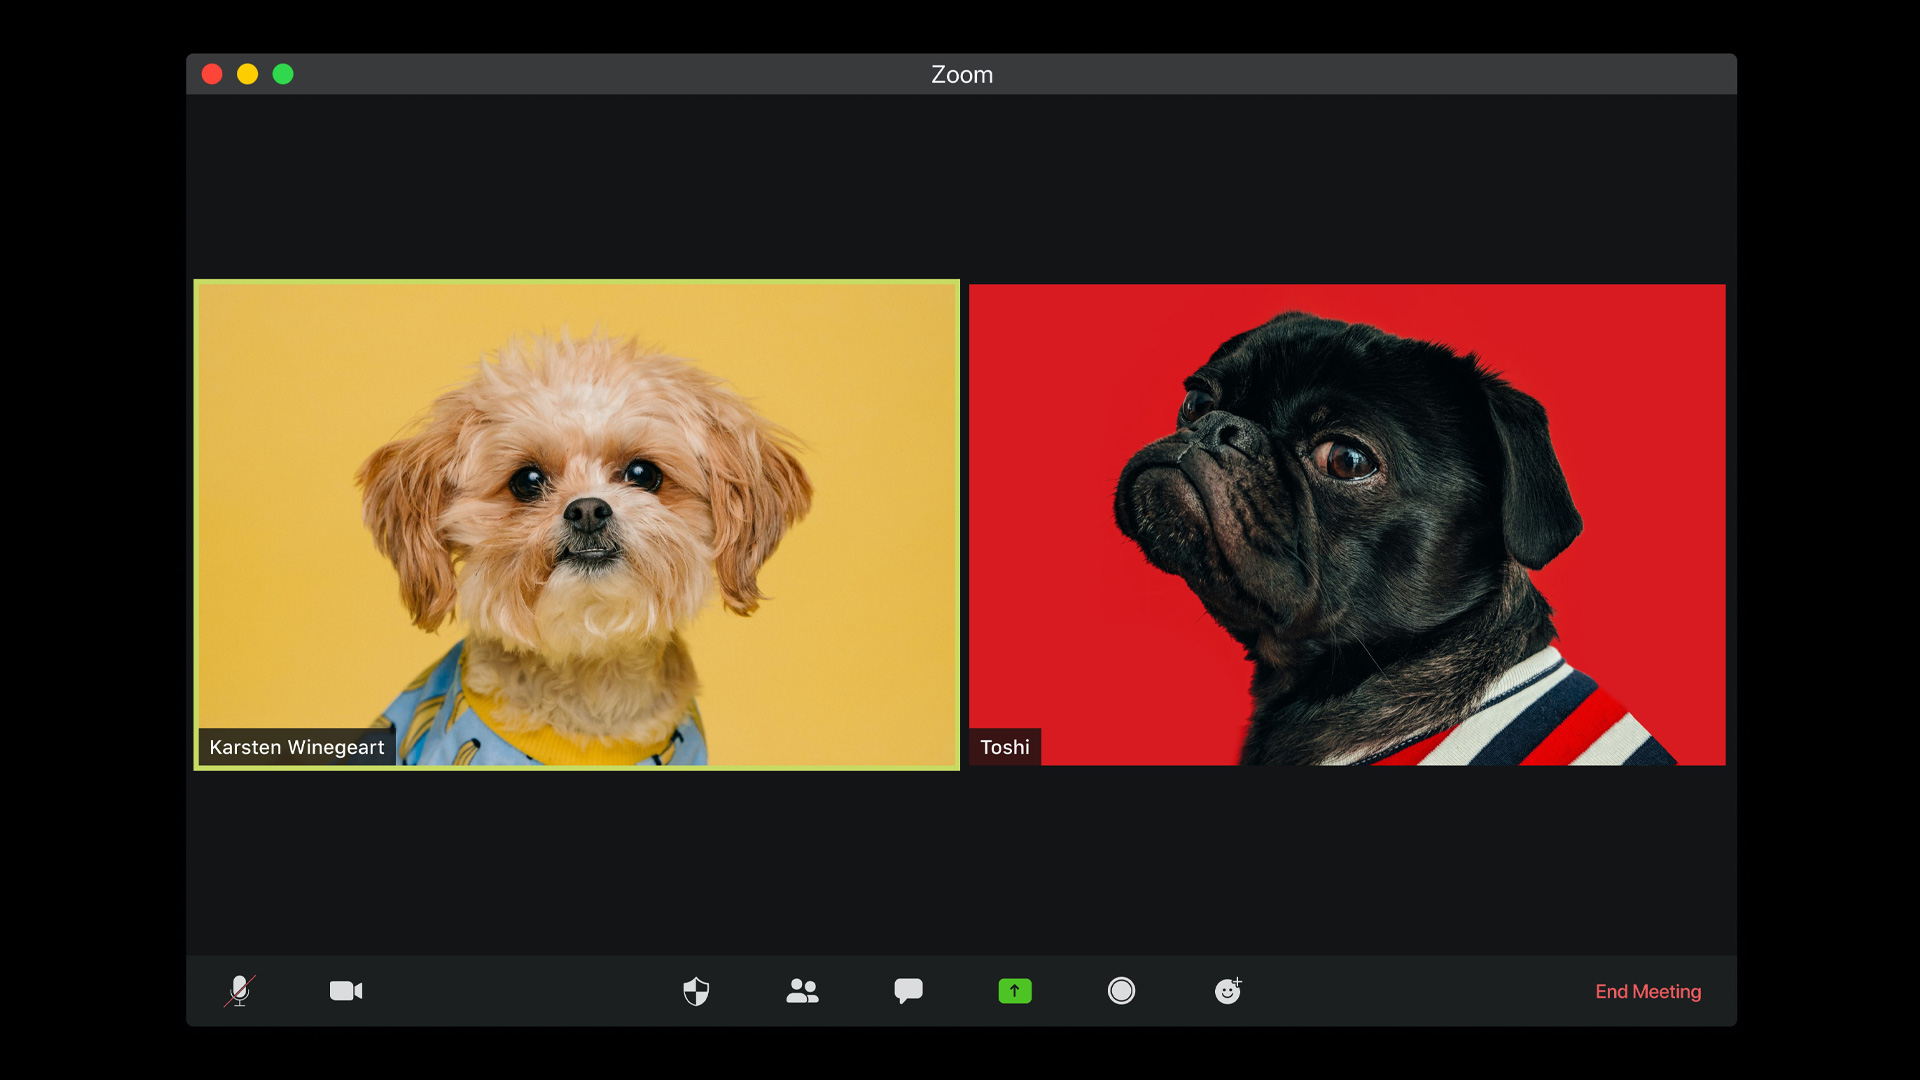 online zoom conference with images of dogs